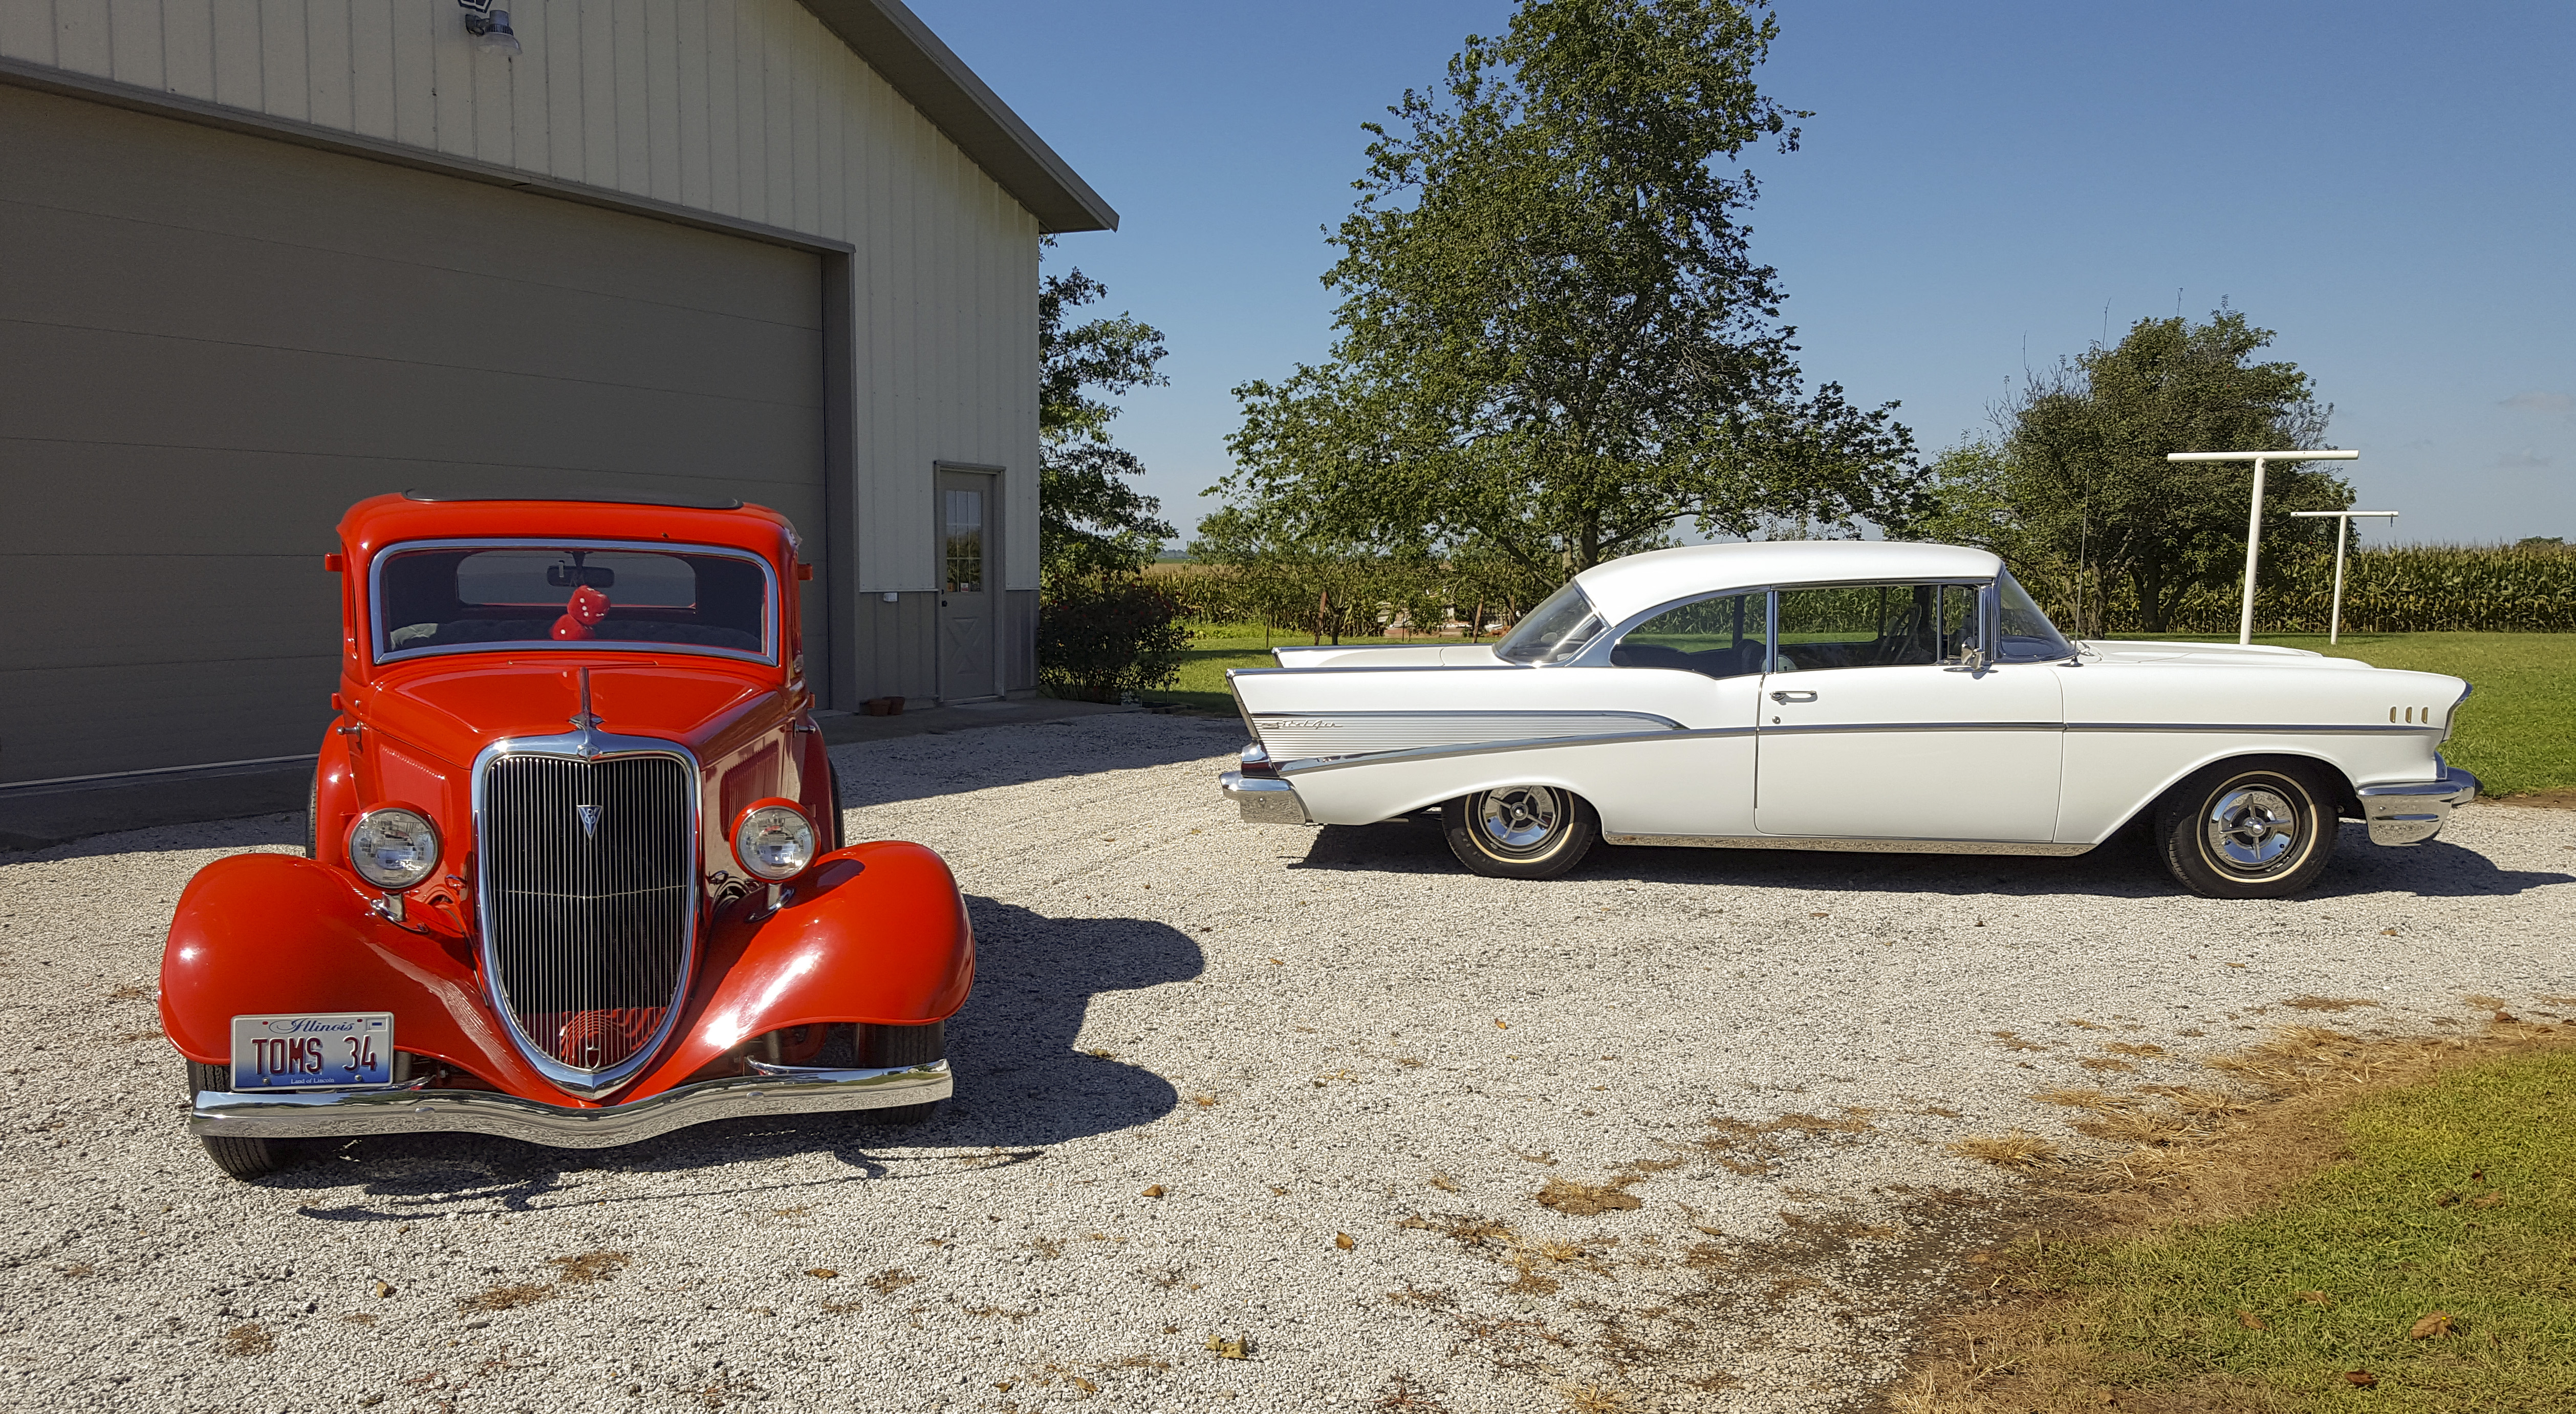 1934 Ford Coupe 1957 Chevy Bel Air Classic Car Restoration Club 2 Door Hardtop Here Is A Picture Of Our Beloved Cars Which Includes 5 Window With Rumble Seat And Chevrolet